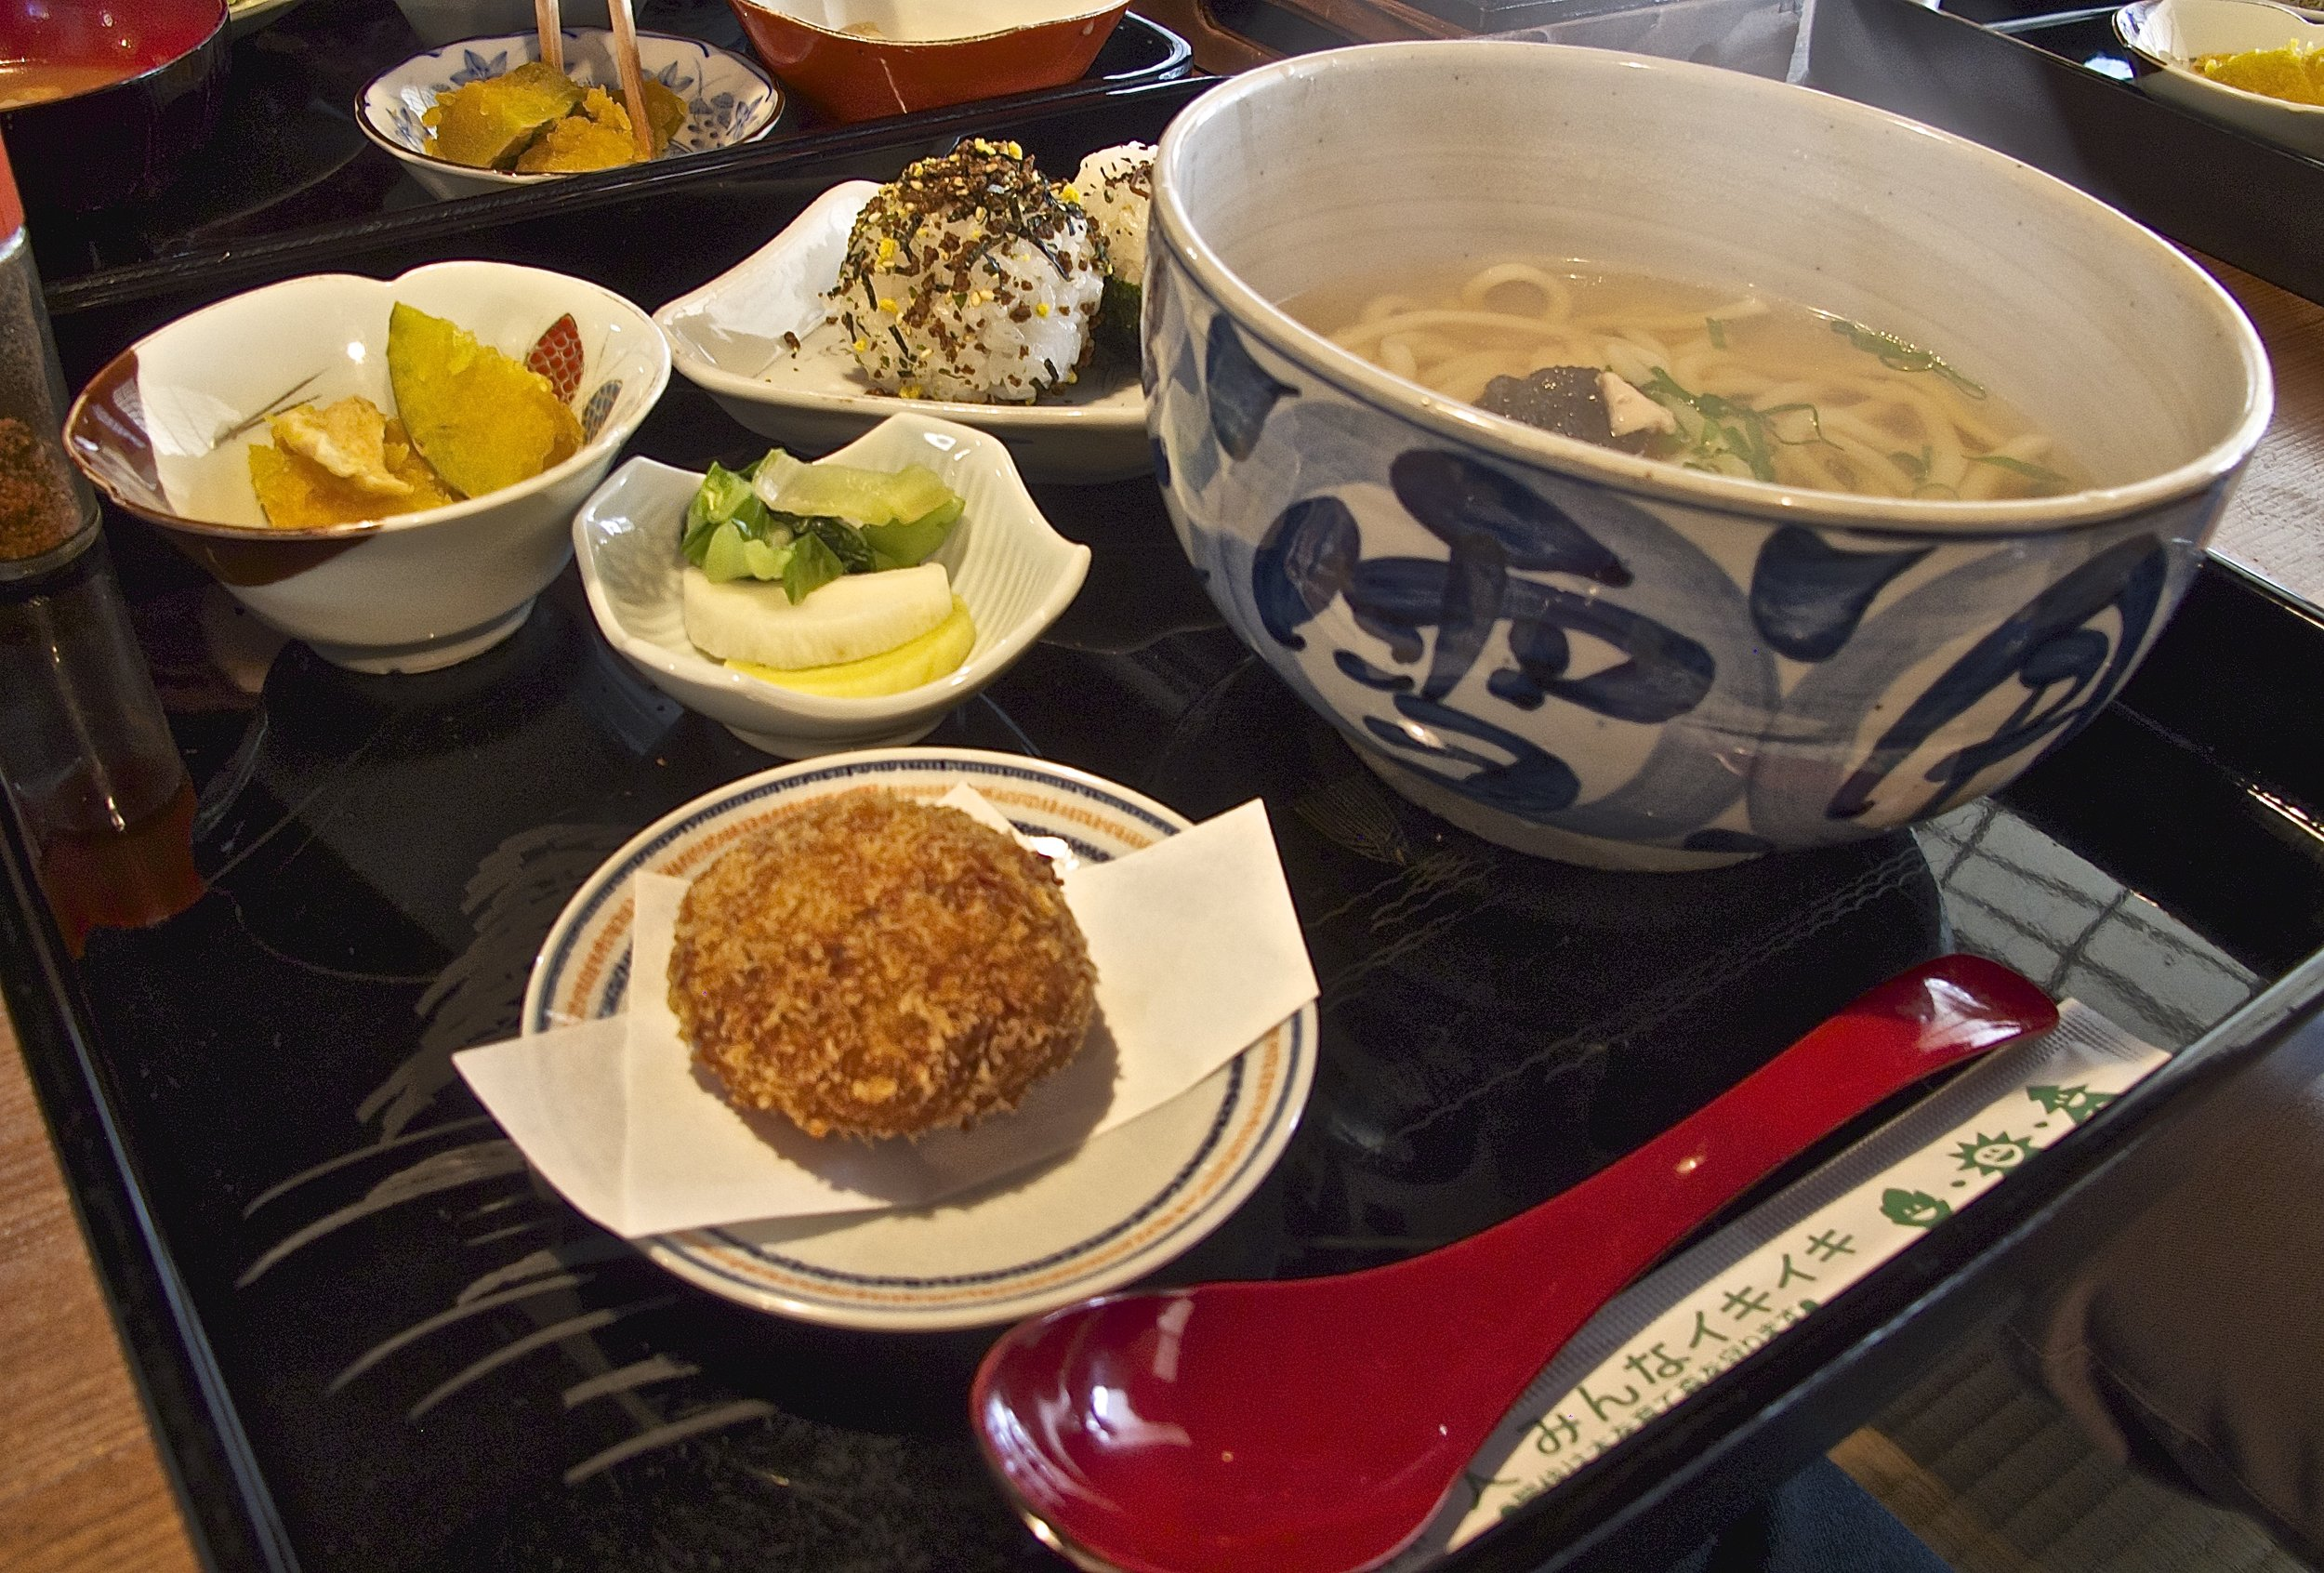 One of the winter lunch specials is hot udon noodle soup made with Mrs. Nishino's aged dashi broth. The restaurant's famous potato croquettes are served alongside every dish.